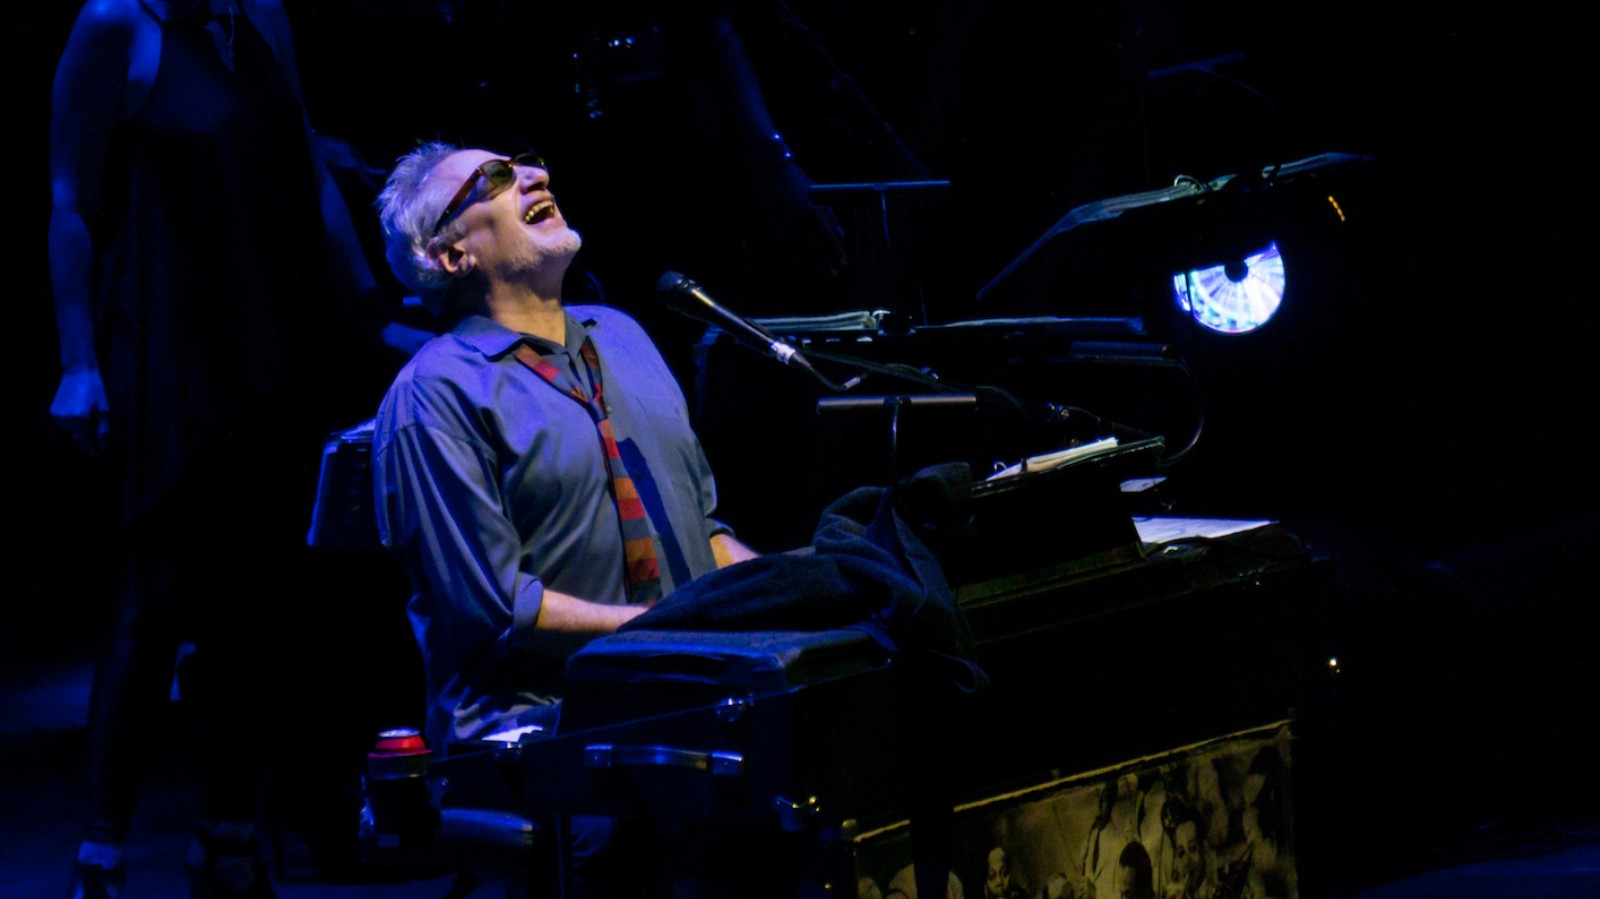 You Have to Applaud Steely Dan, Even If You Can't Stand Them